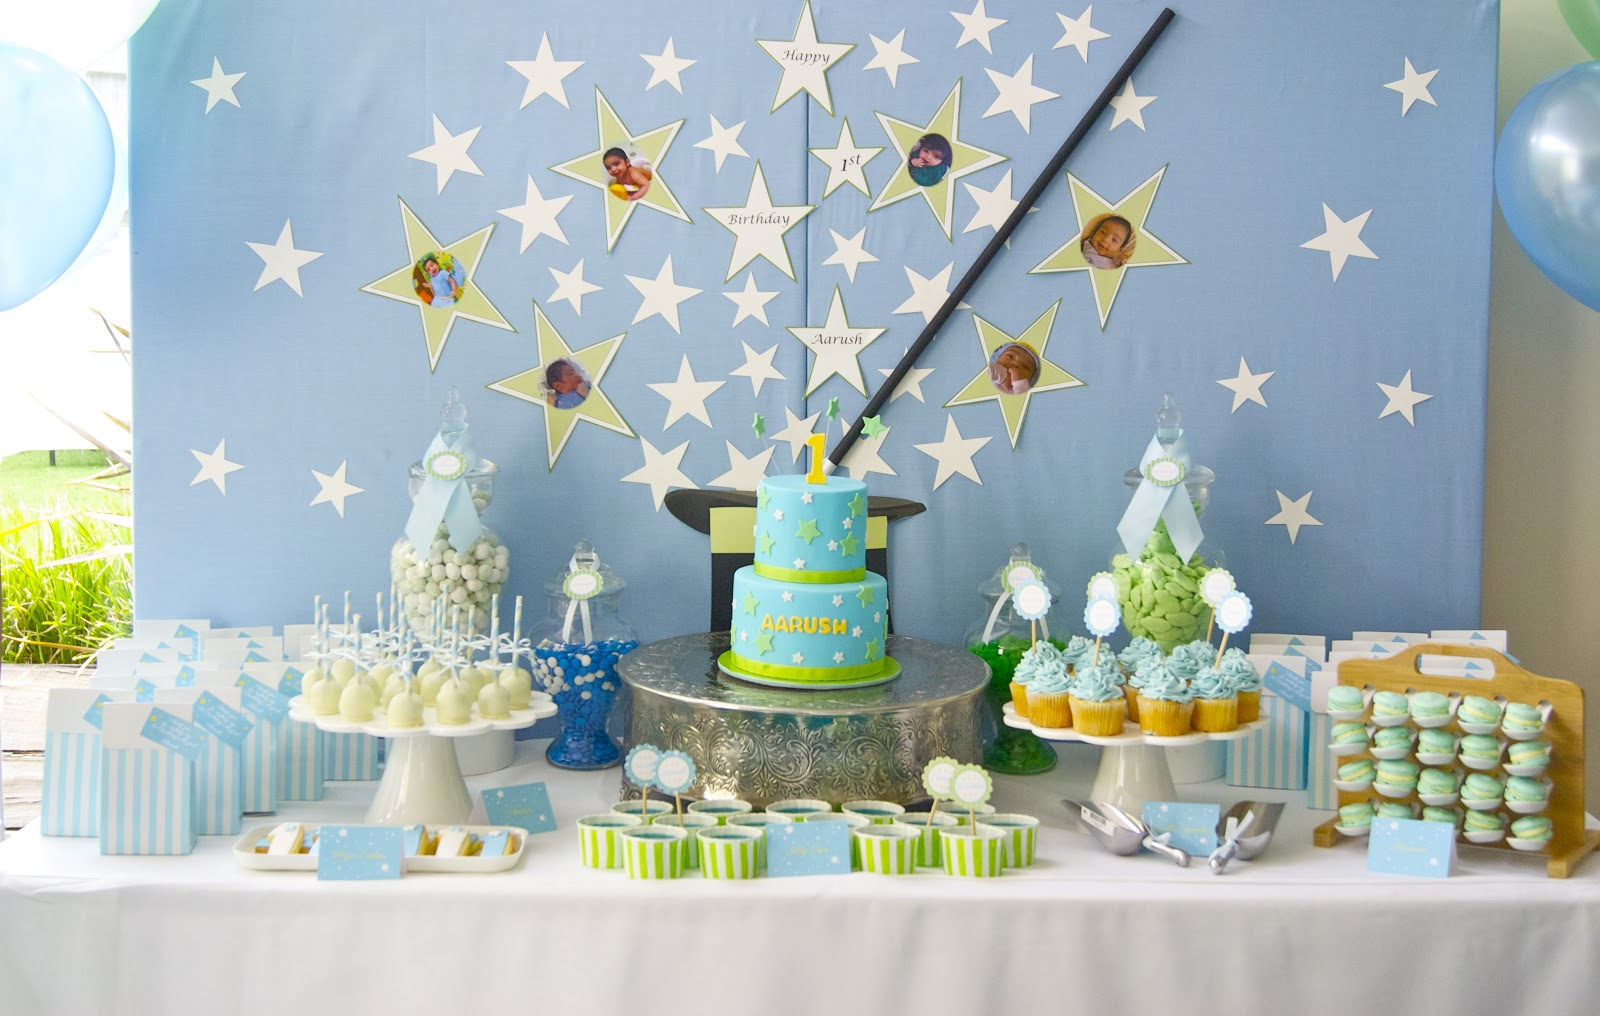 The Inspired Occasion Magical 1st Birthday in Blue White and Green